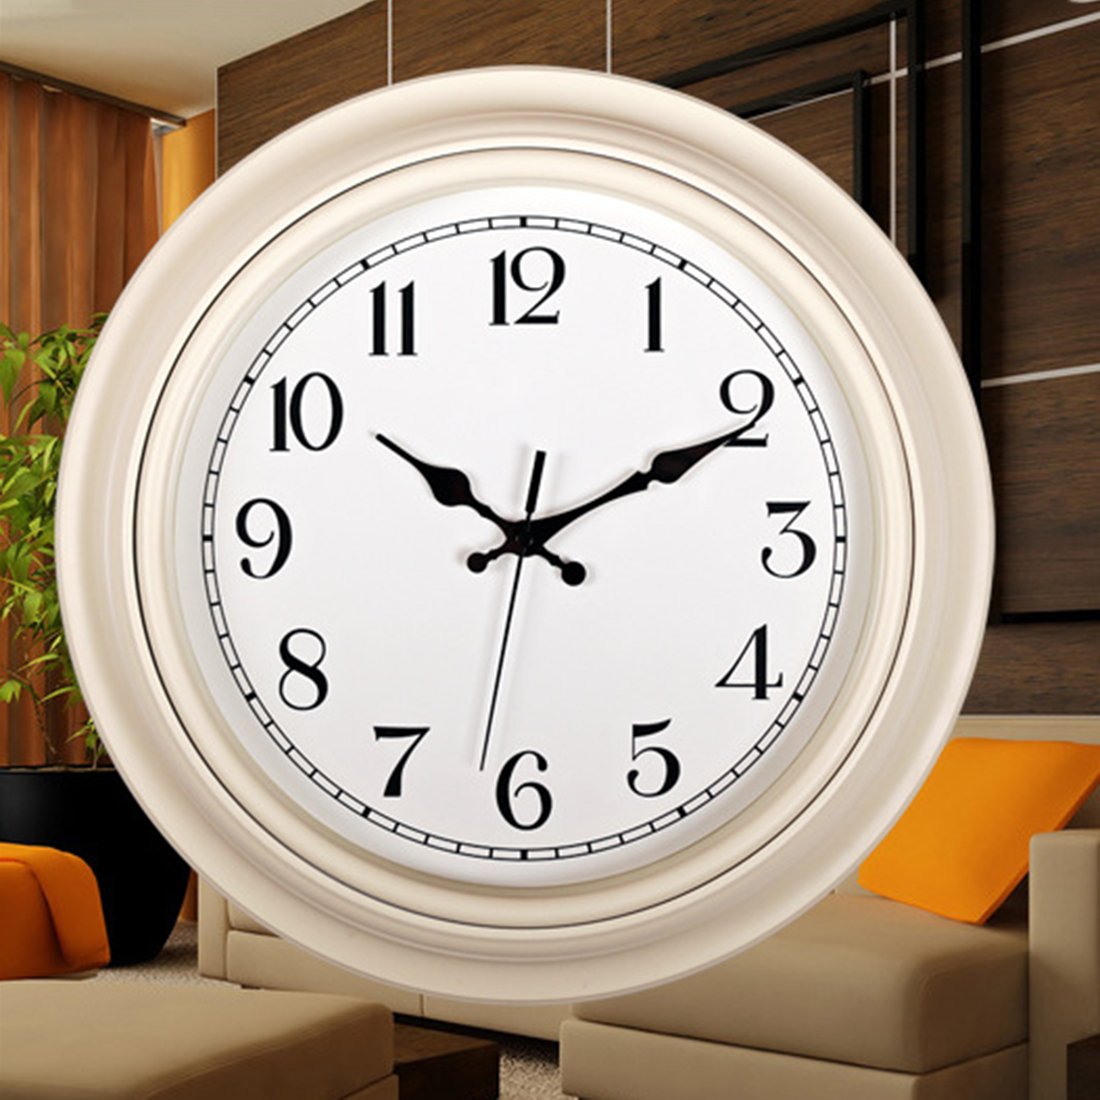 14 inch fashion style wall clock arabic numerals design silent 14 inch fashion style wall clock arabic numerals design silent quartz wall clock decor crafts in wall clocks from home garden on aliexpress alibaba amipublicfo Choice Image